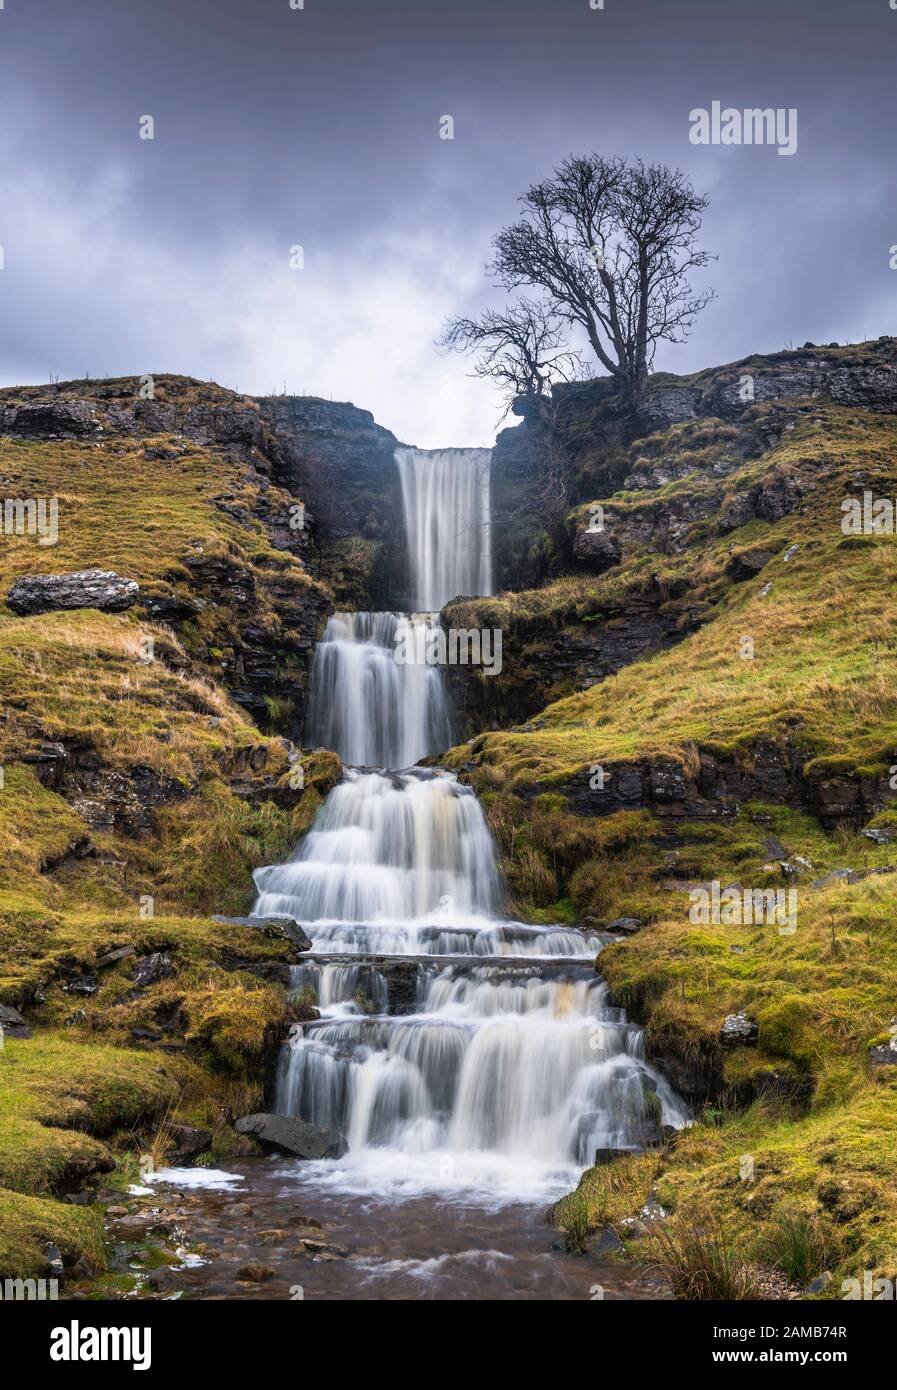 Standing in a rain & hail storm photographing the stunning cascading terraces of Cow Gill Waterfalls in Cray, Yorkshire Dales National Park. Stock Photo